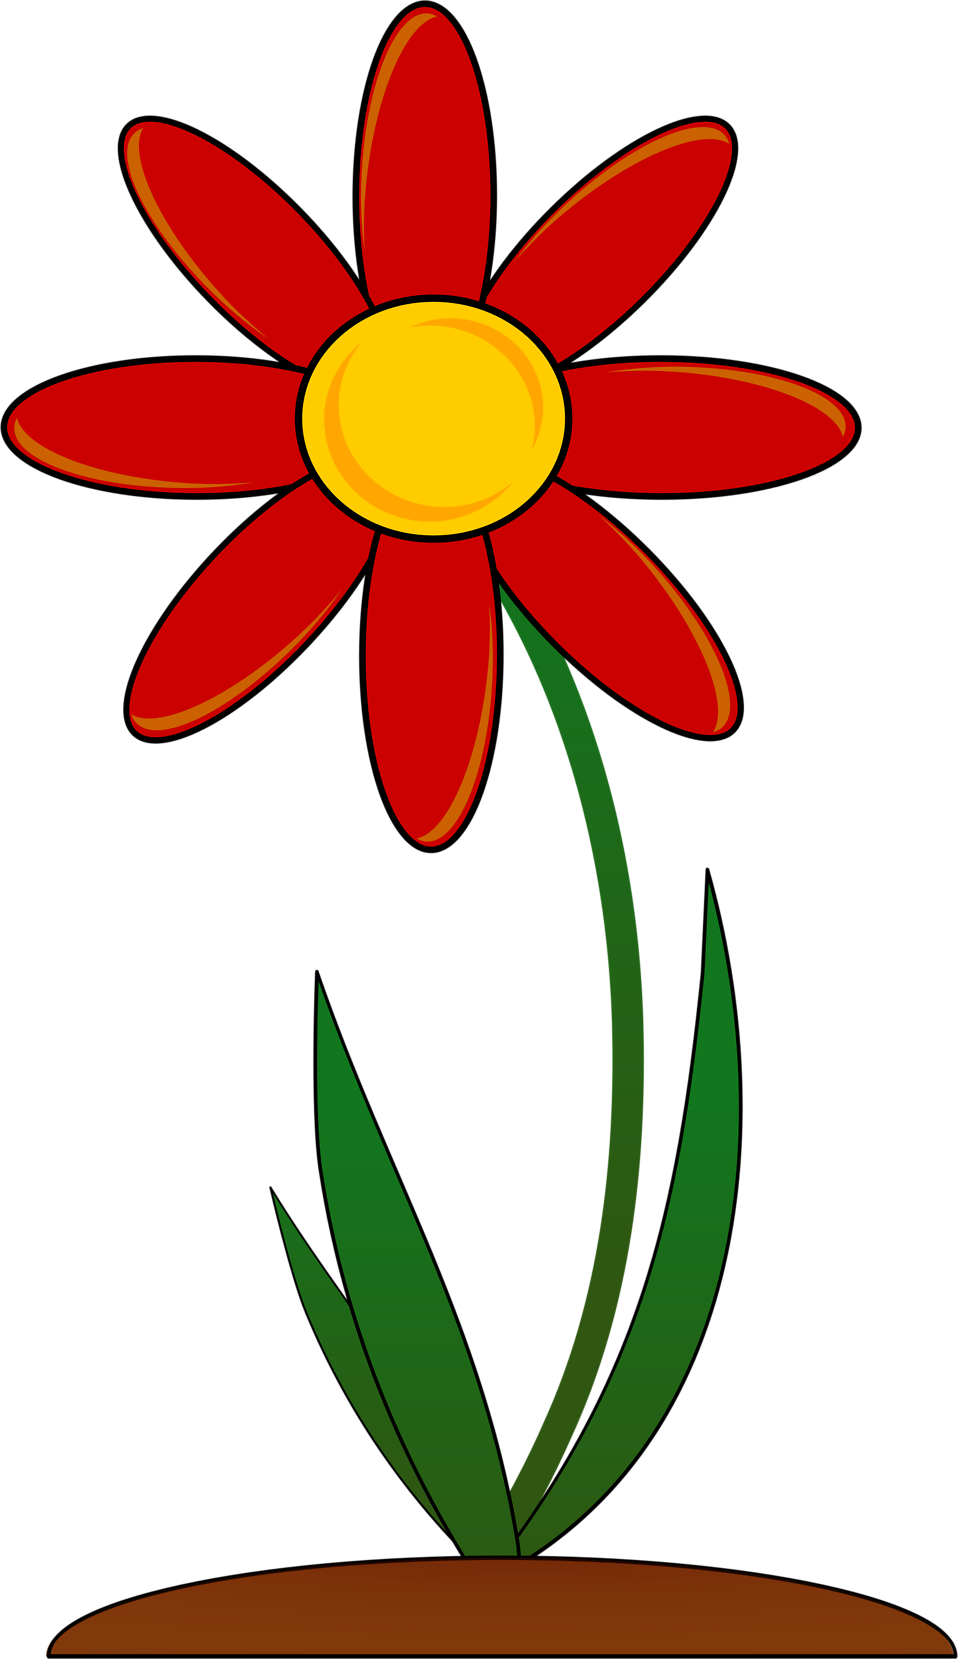 Flowers clipart illustration.  collection of transparent